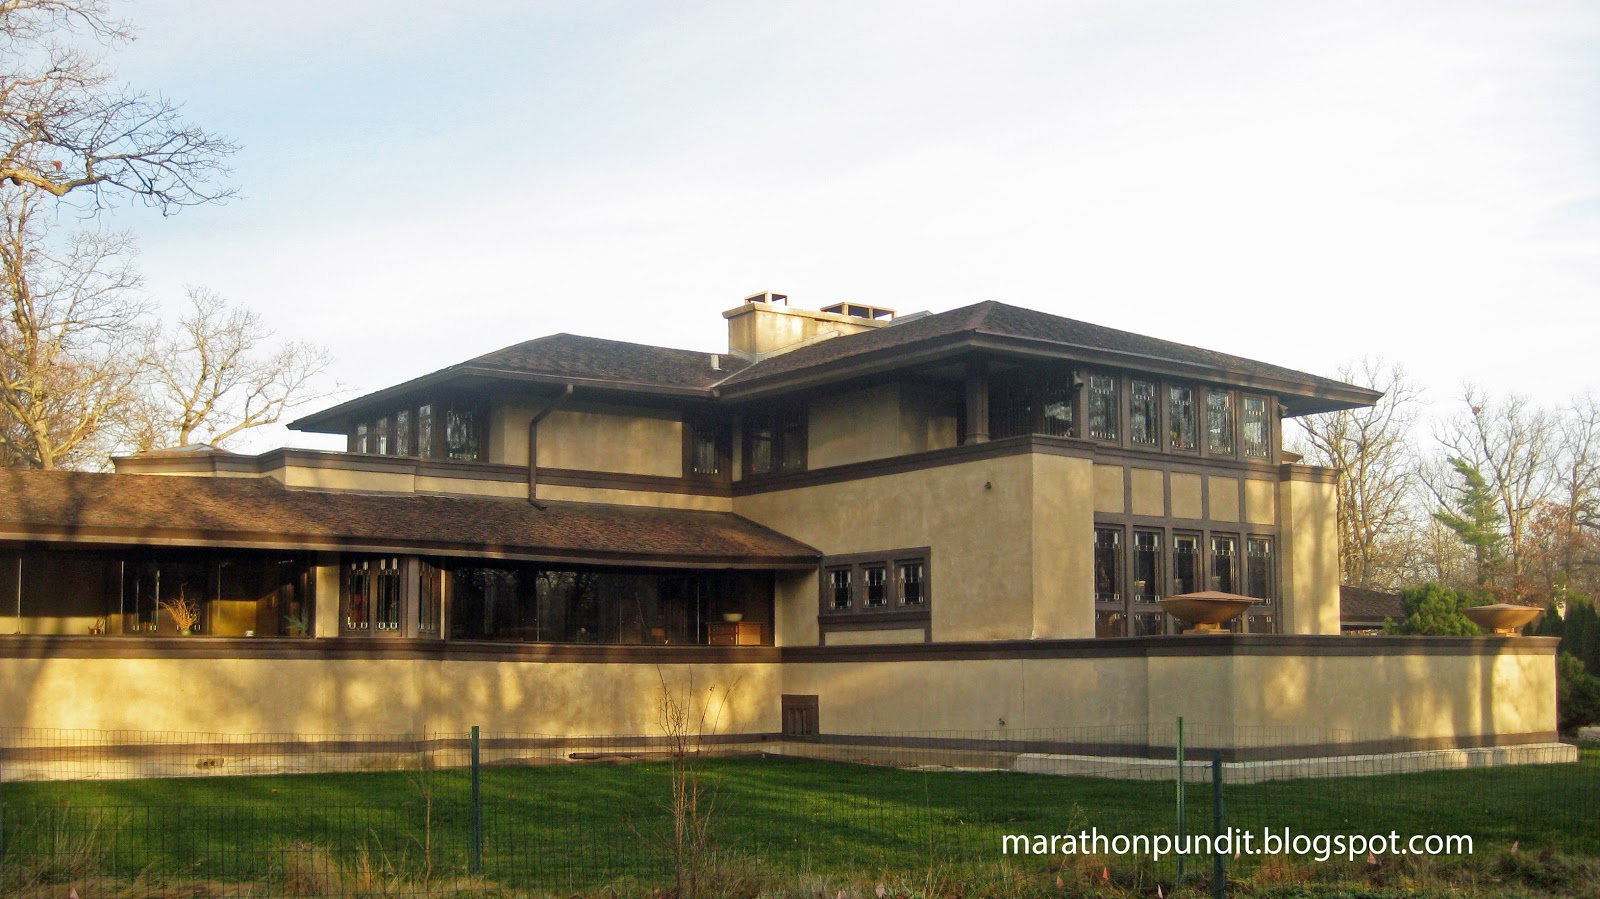 ward willits house One of the best residential examples from frank lloyd wright's prairie period, an early modernist masterpiece.